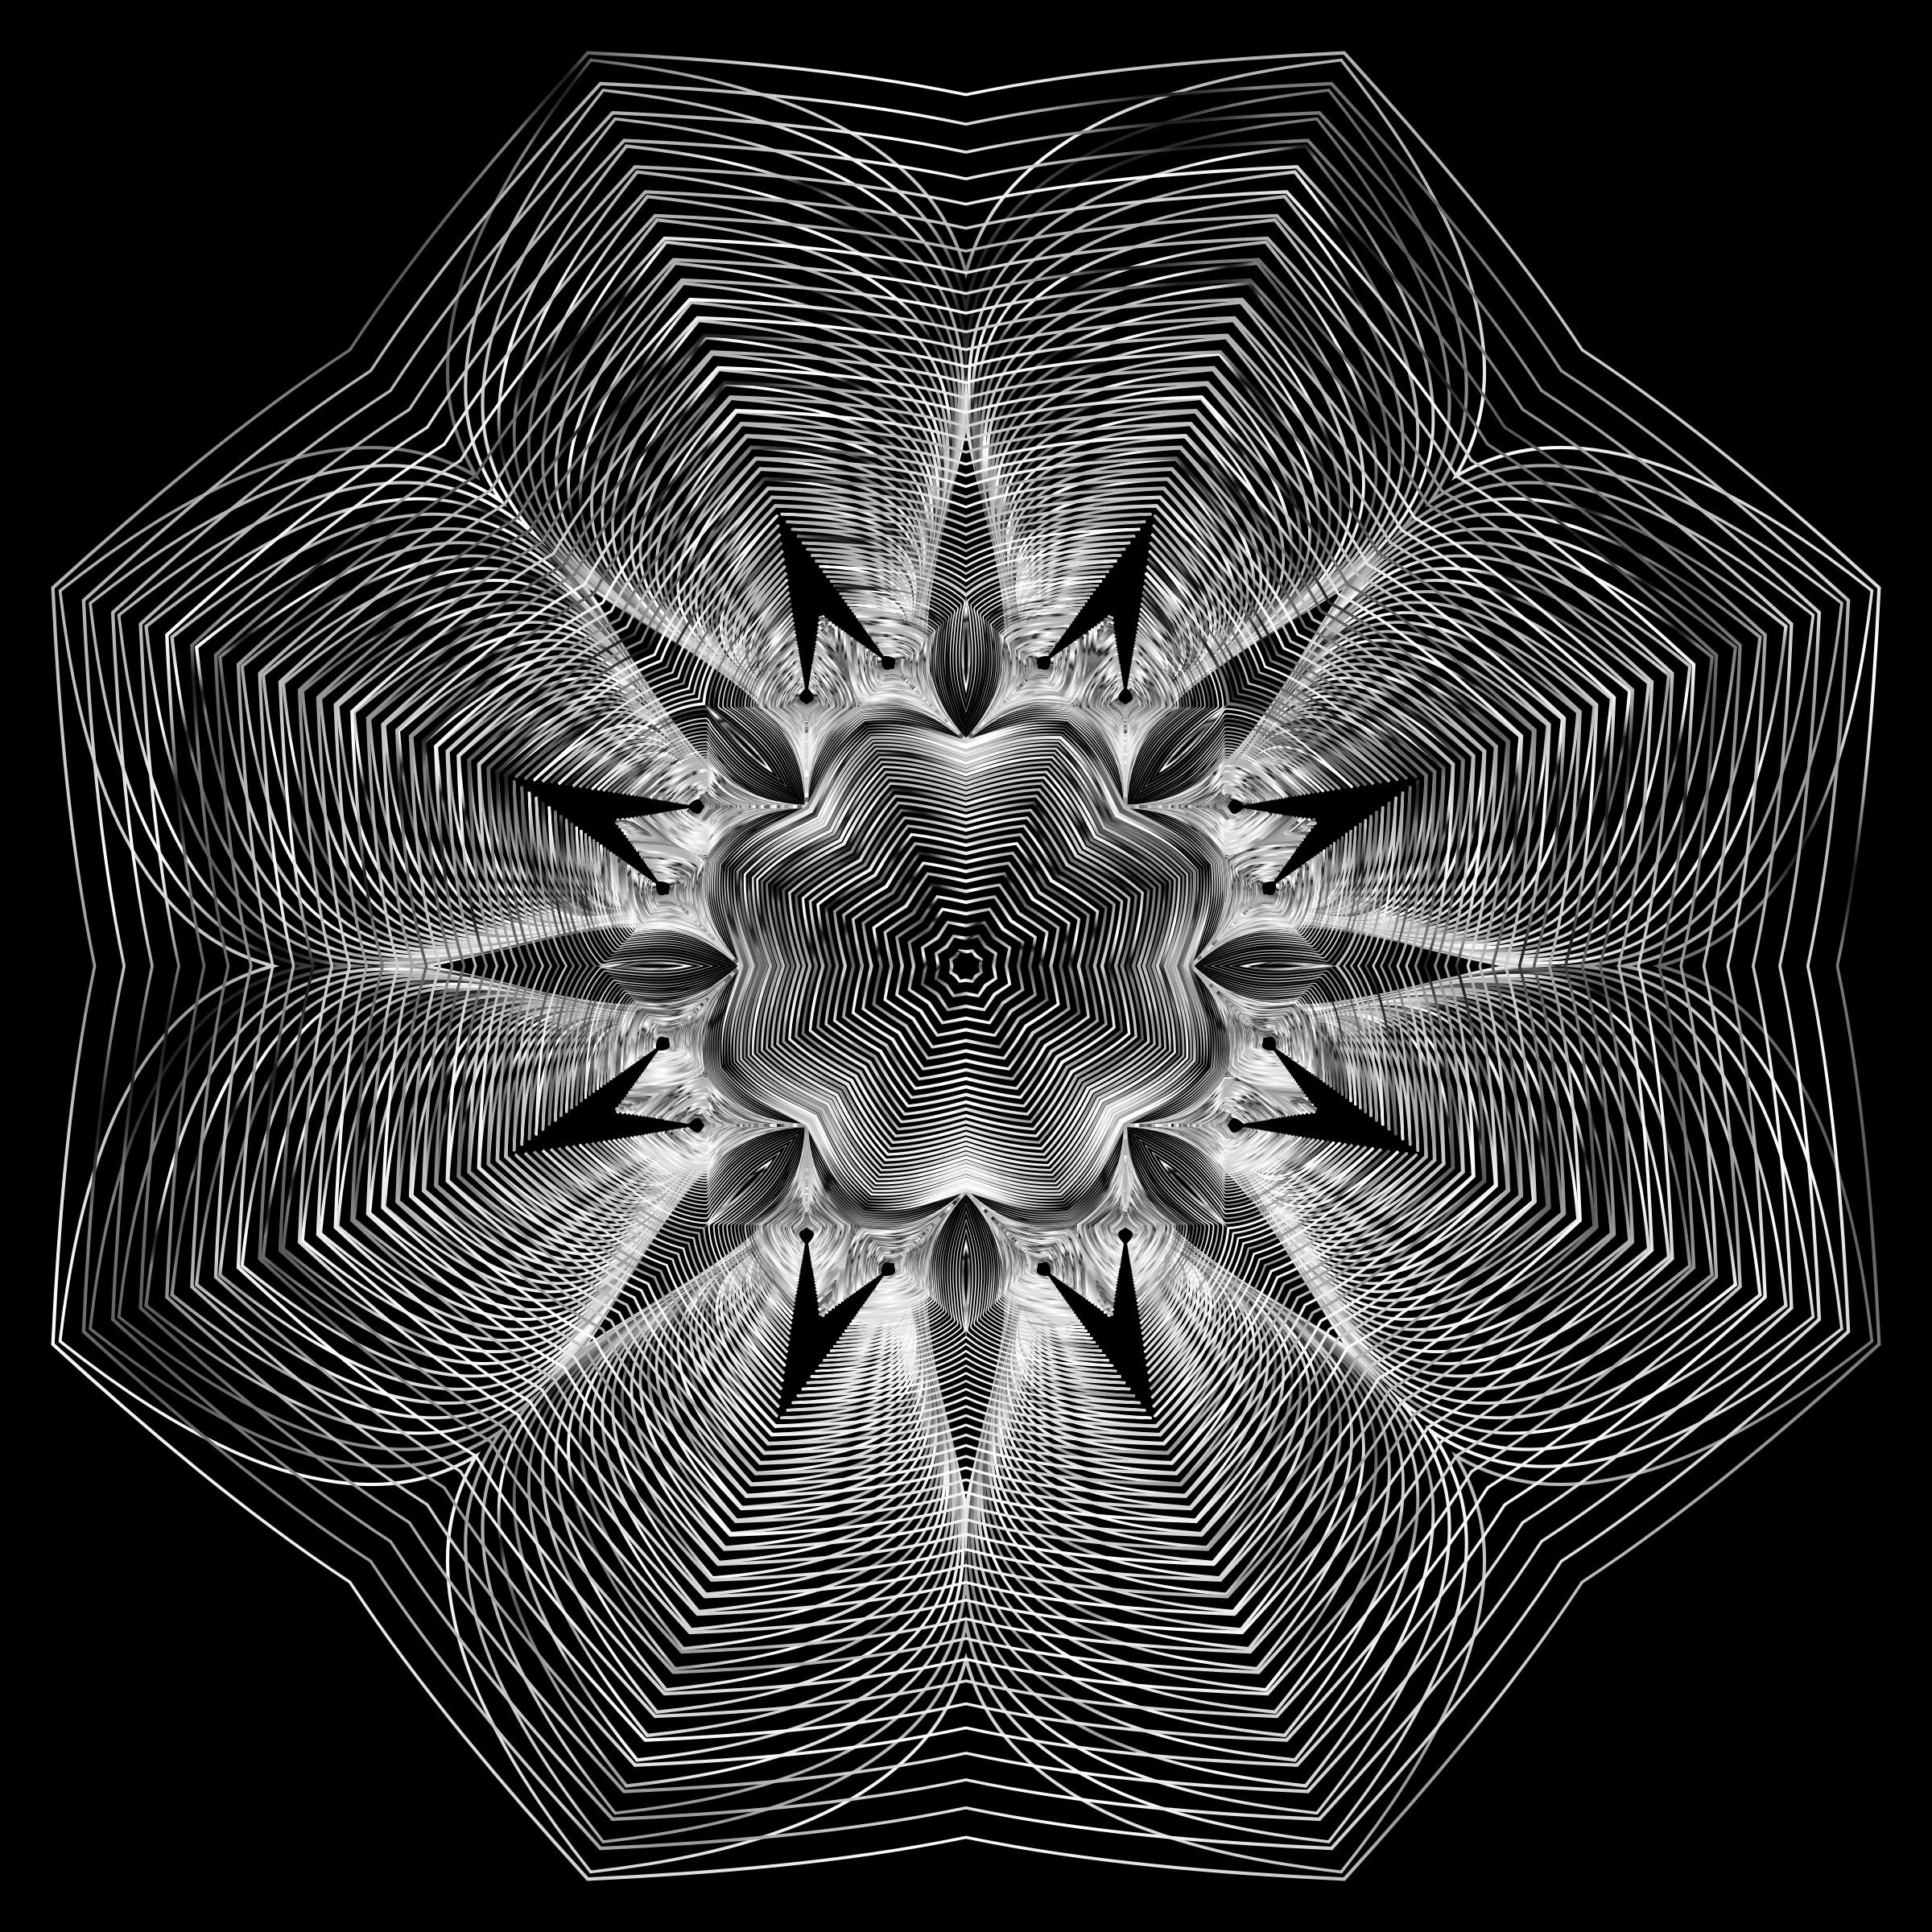 Prismatic Floral Line Art 7 by GDJ